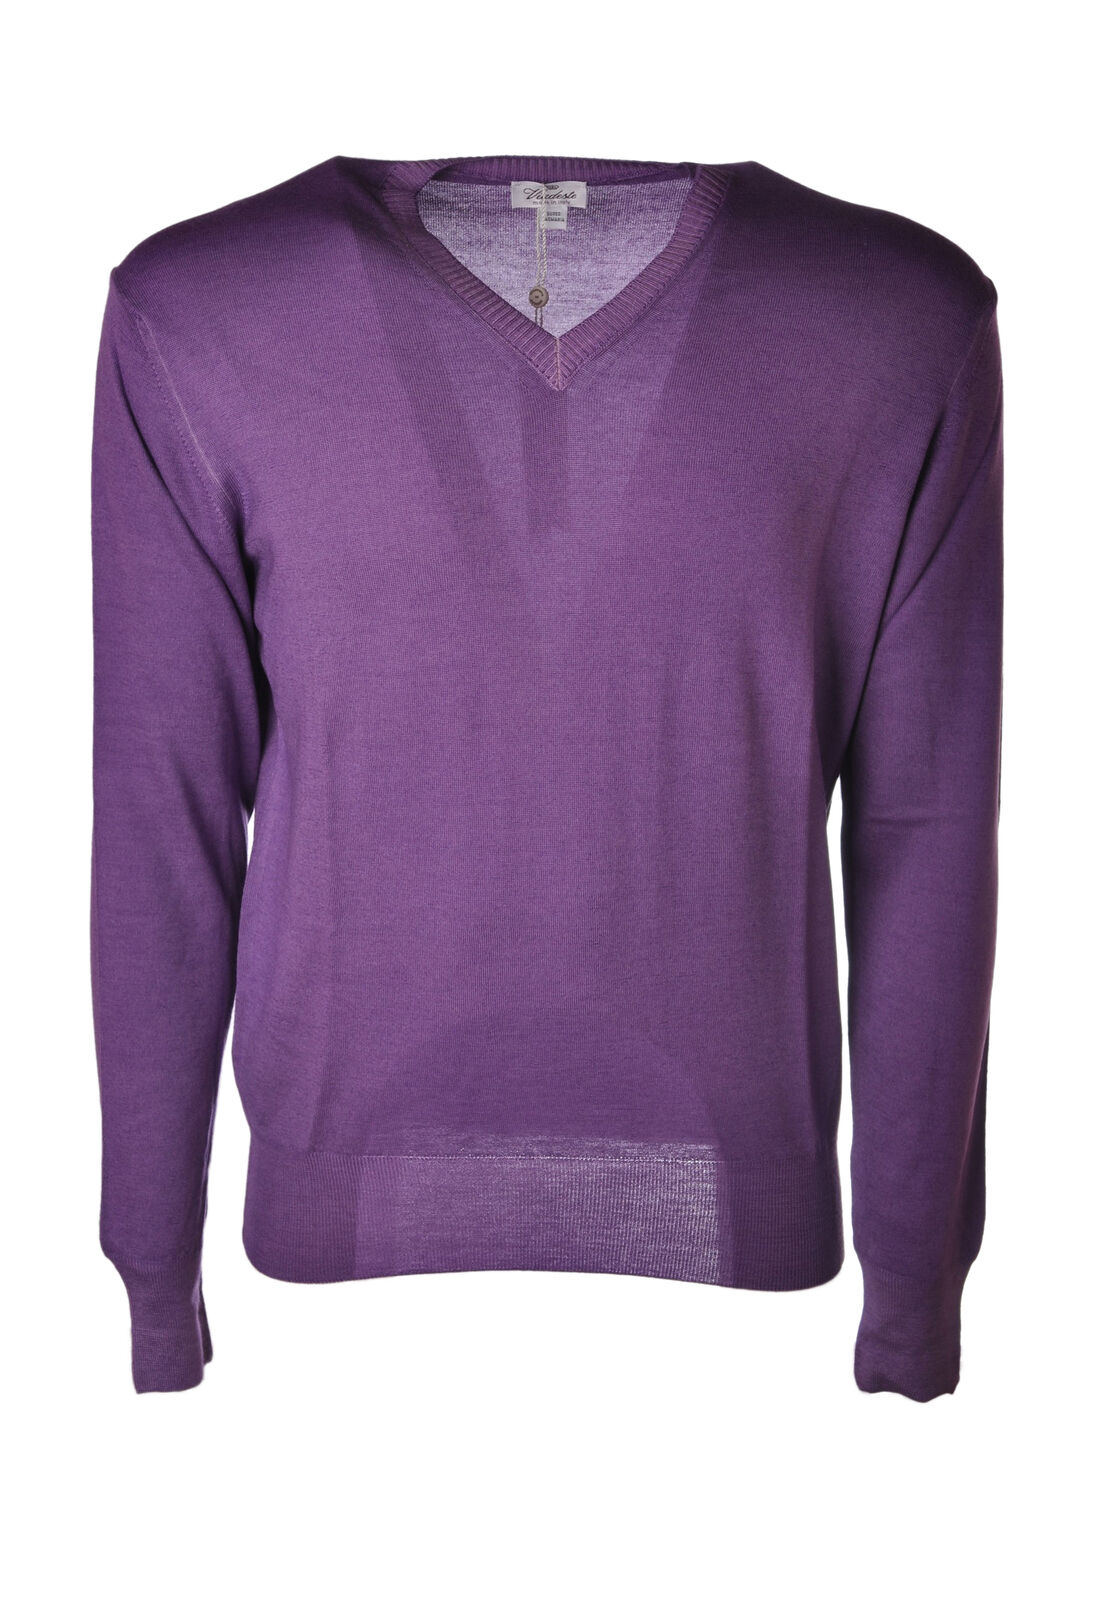 Viadeste - Knitwear-Sweaters - Man - Purple - 4678704E191045